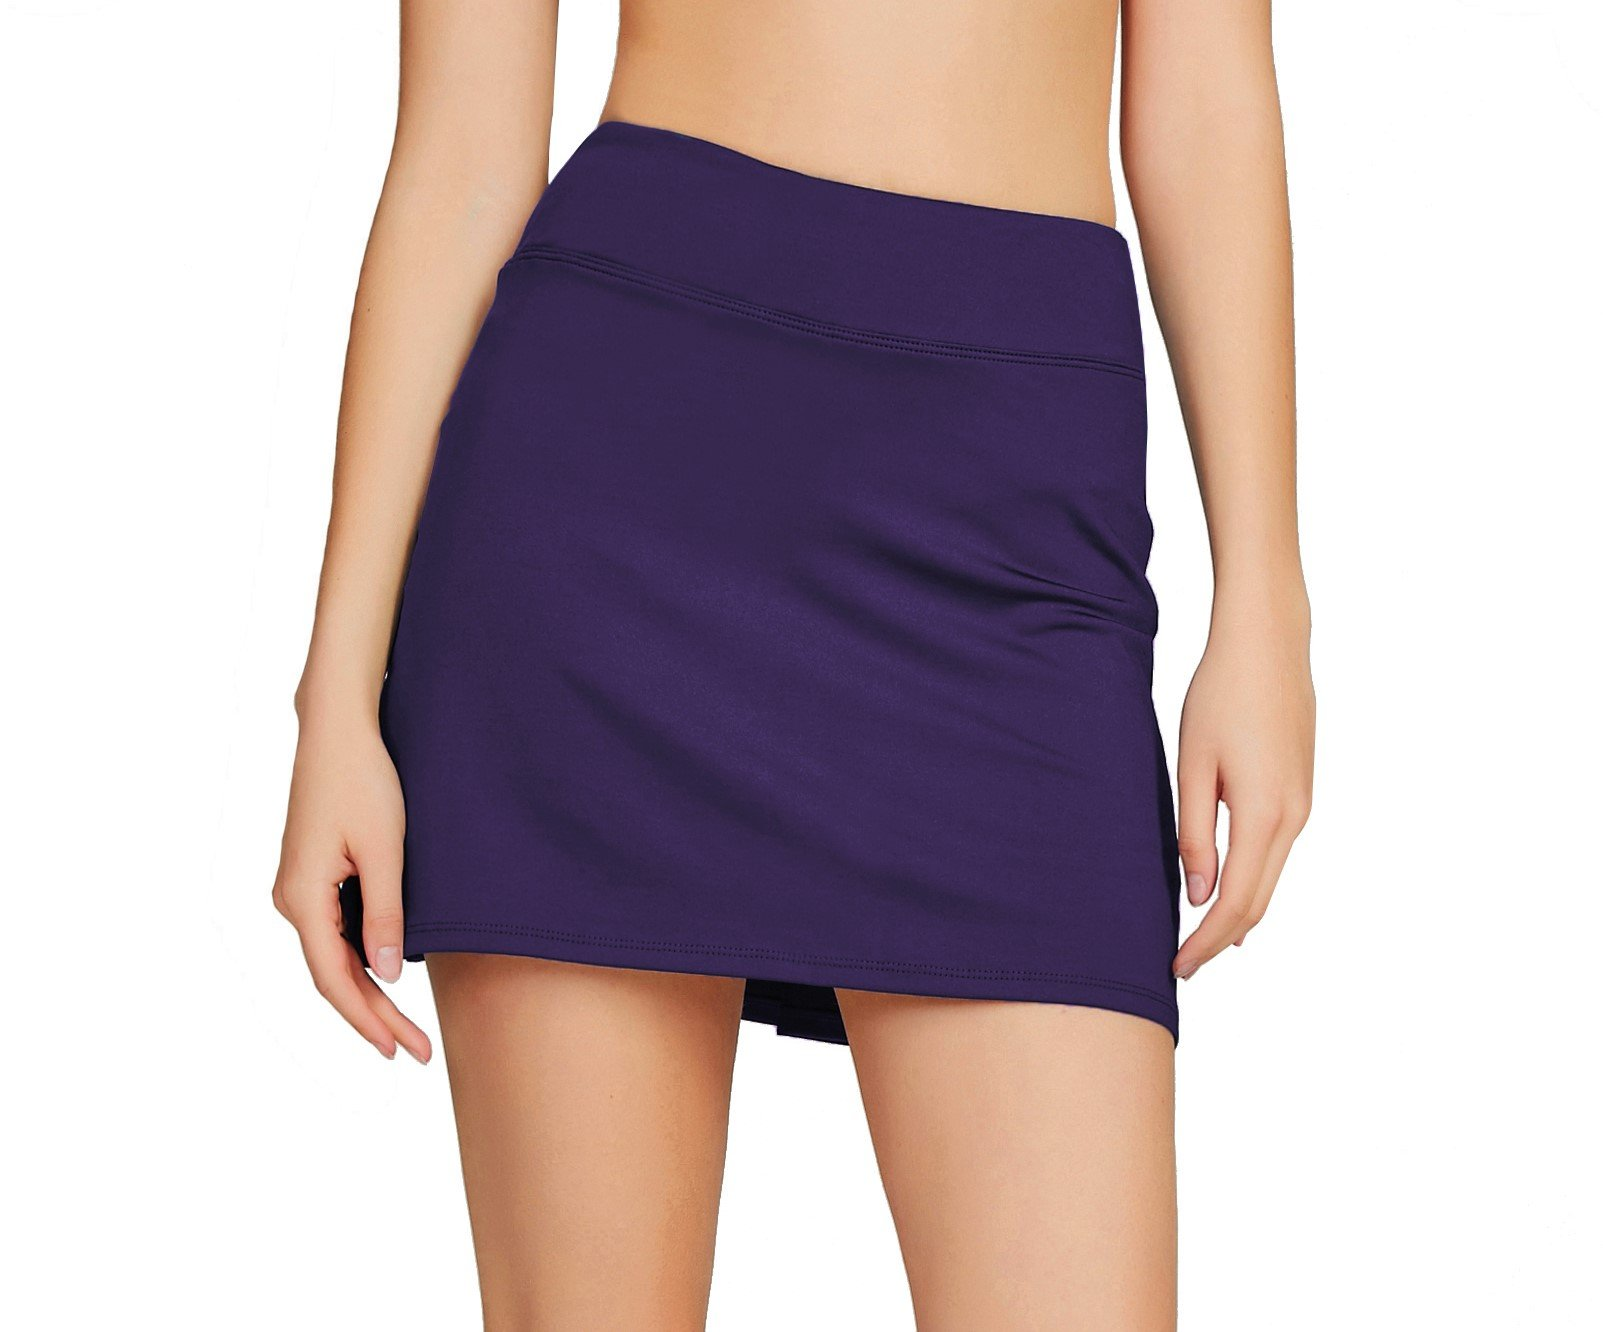 Cityoung Women's Casual Pleated Tennis Golf Skirt with Underneath Shorts Running Skorts d_pl xs